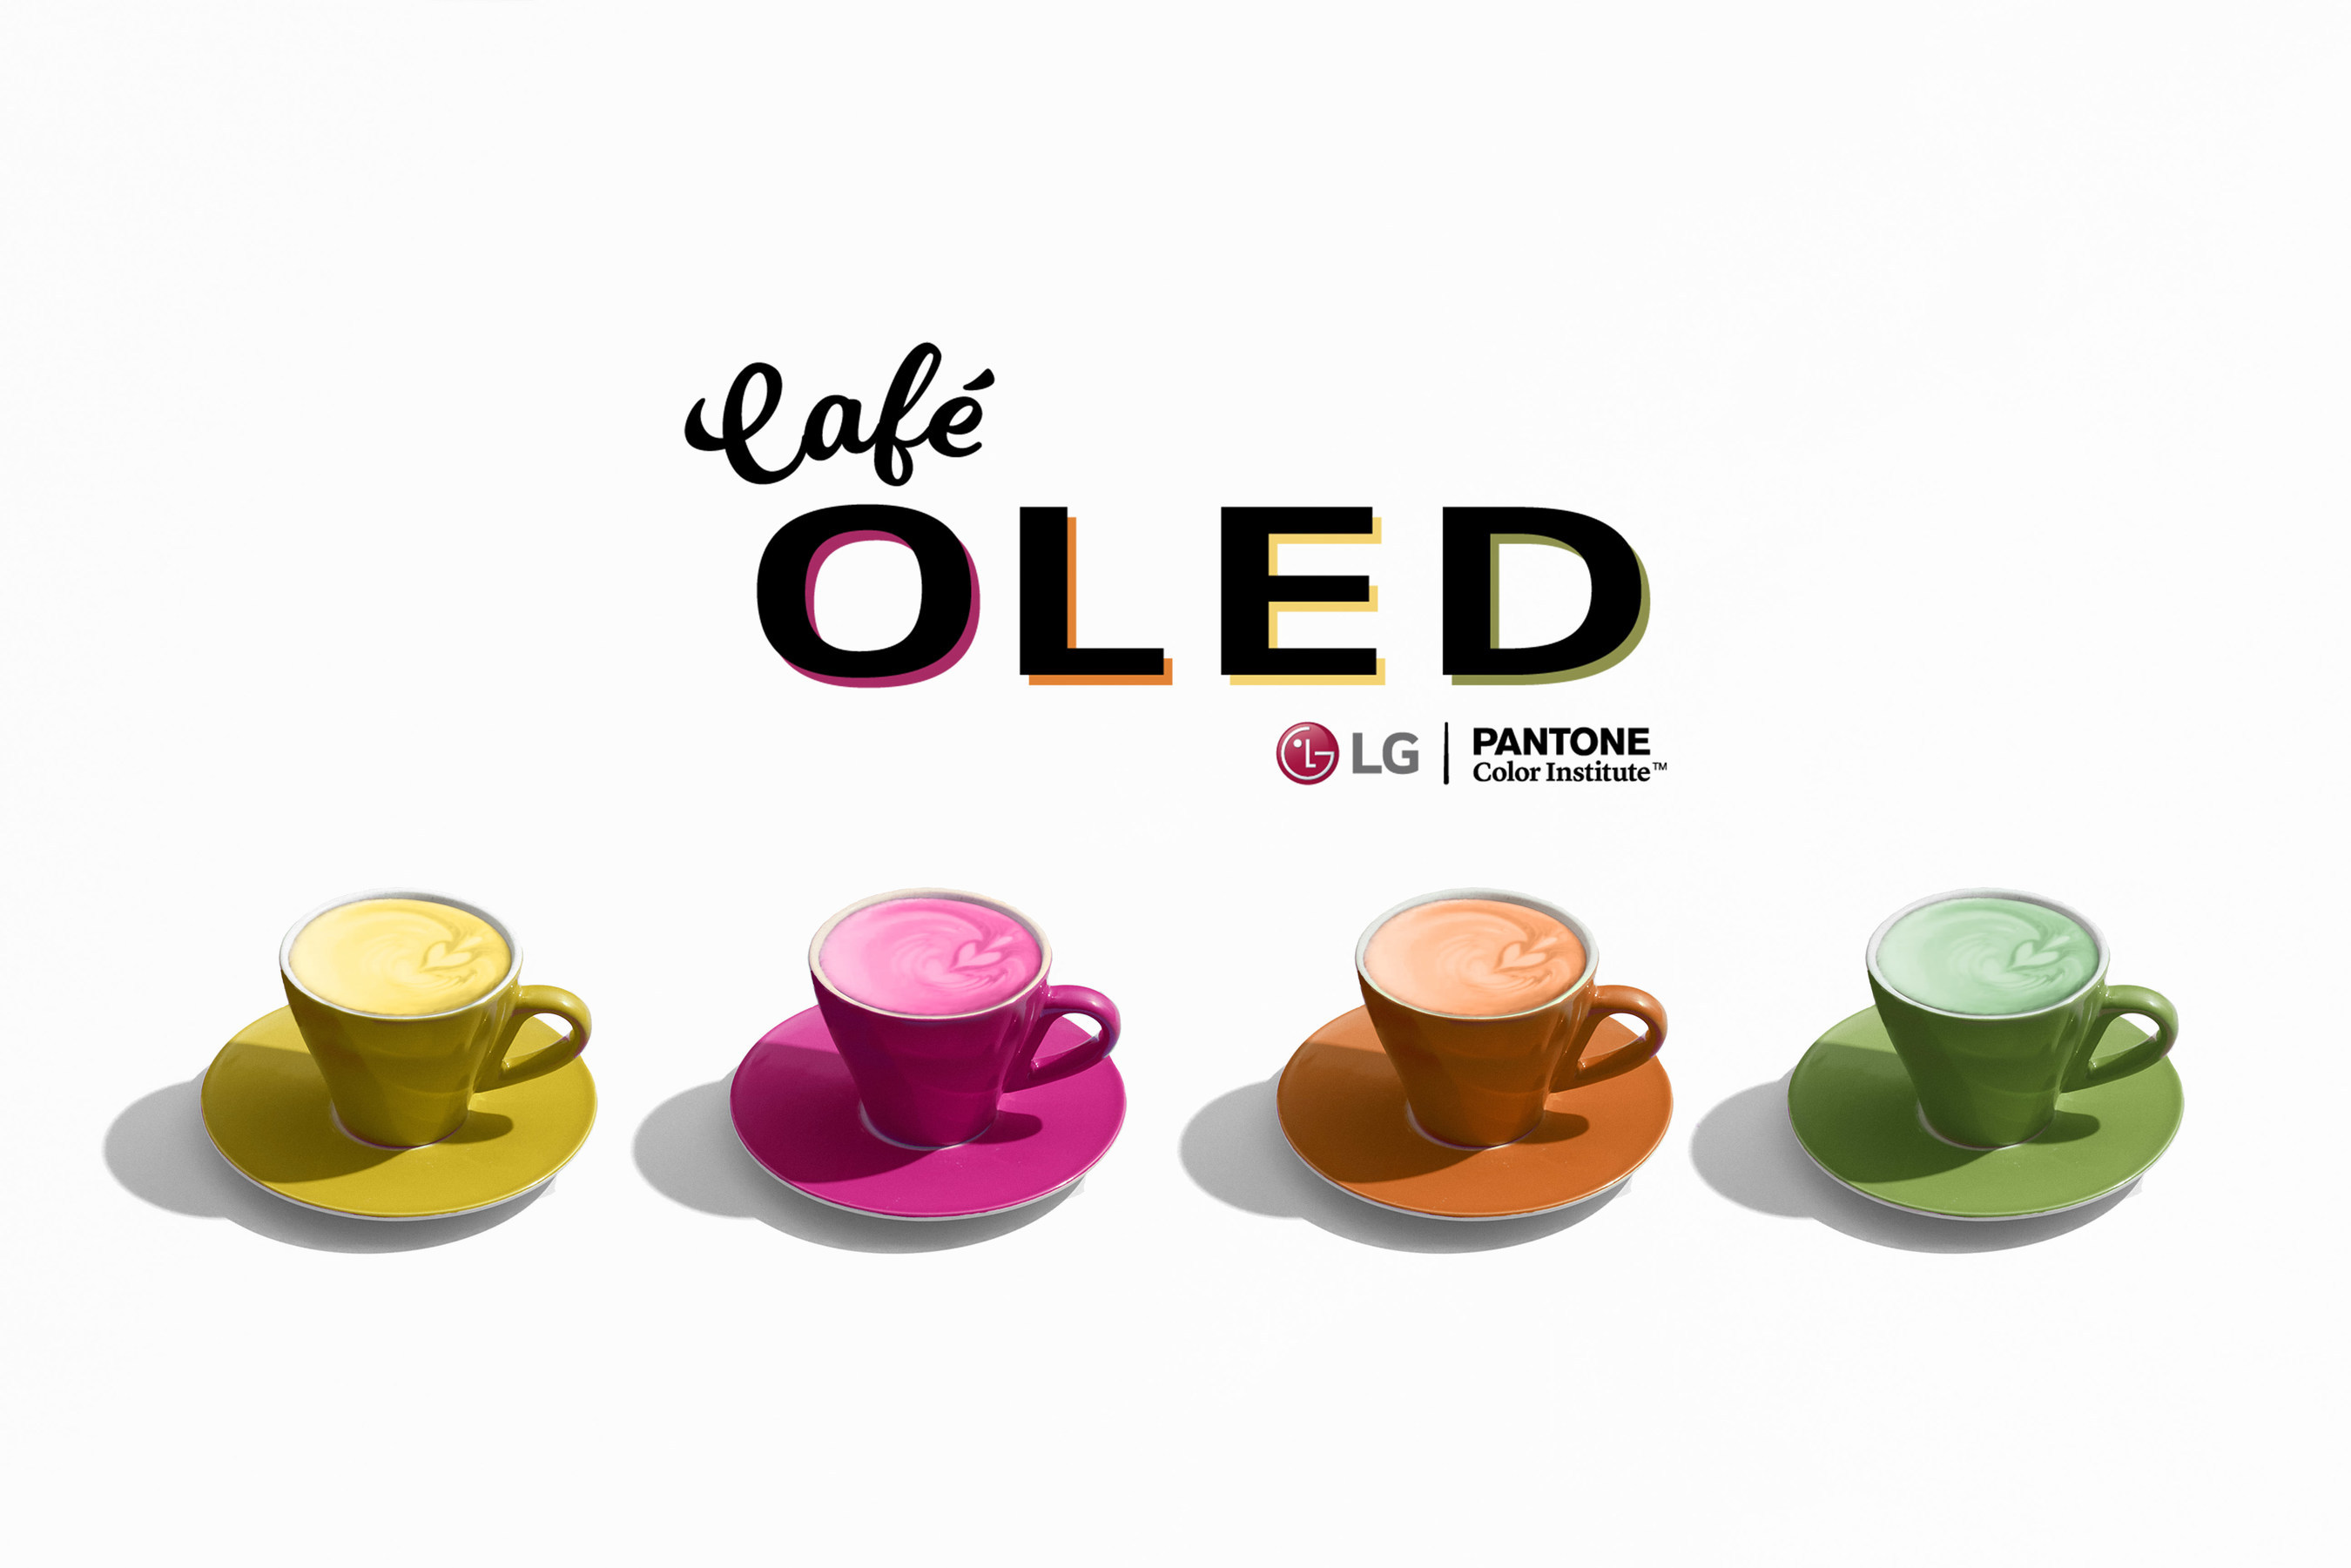 Pantone and LG's pop-up Café OLED's run in New York's SoHo is July 12-14.